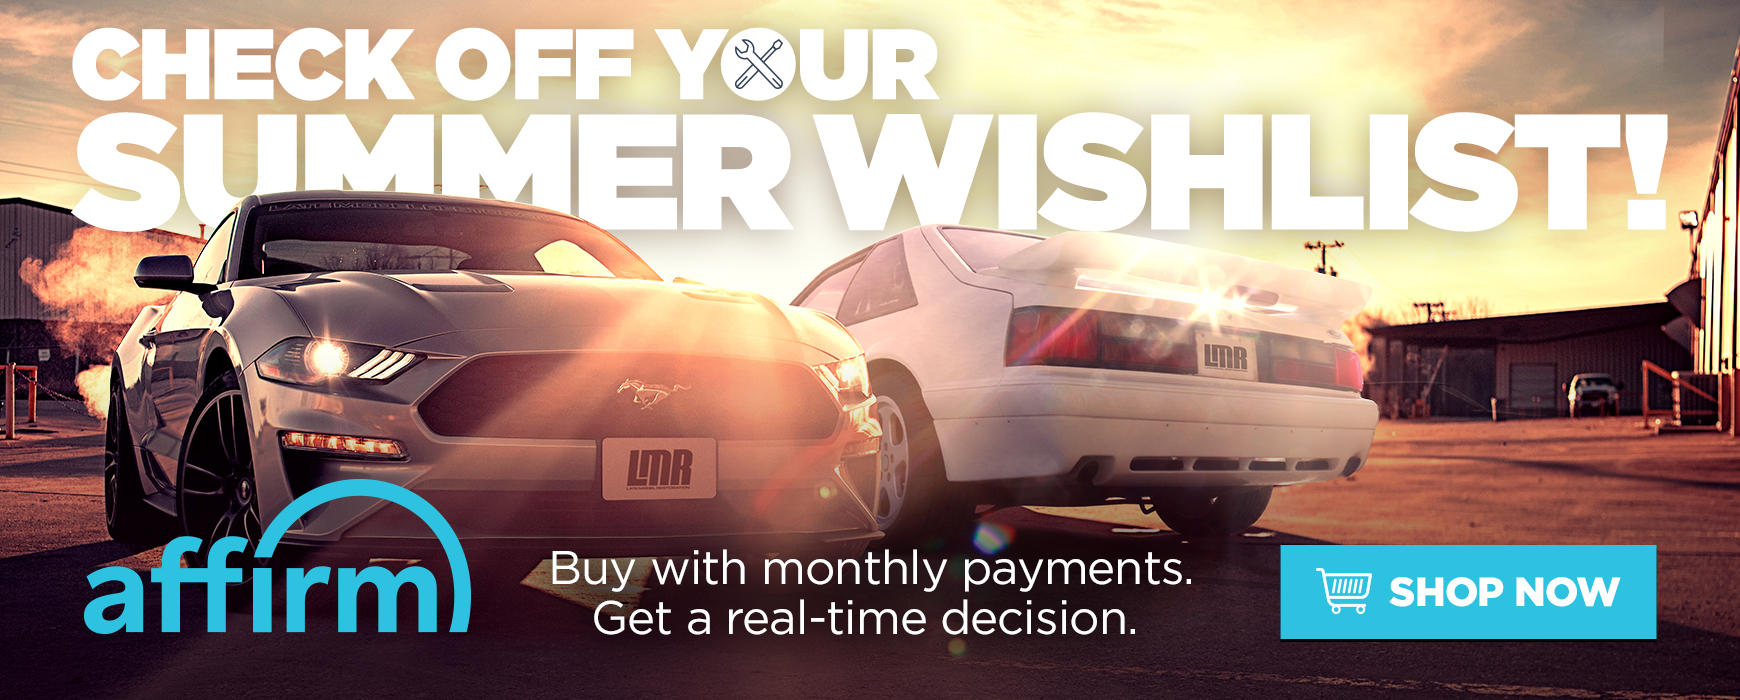 Checkoff Your Summer Wishlist w/Affirm Financing